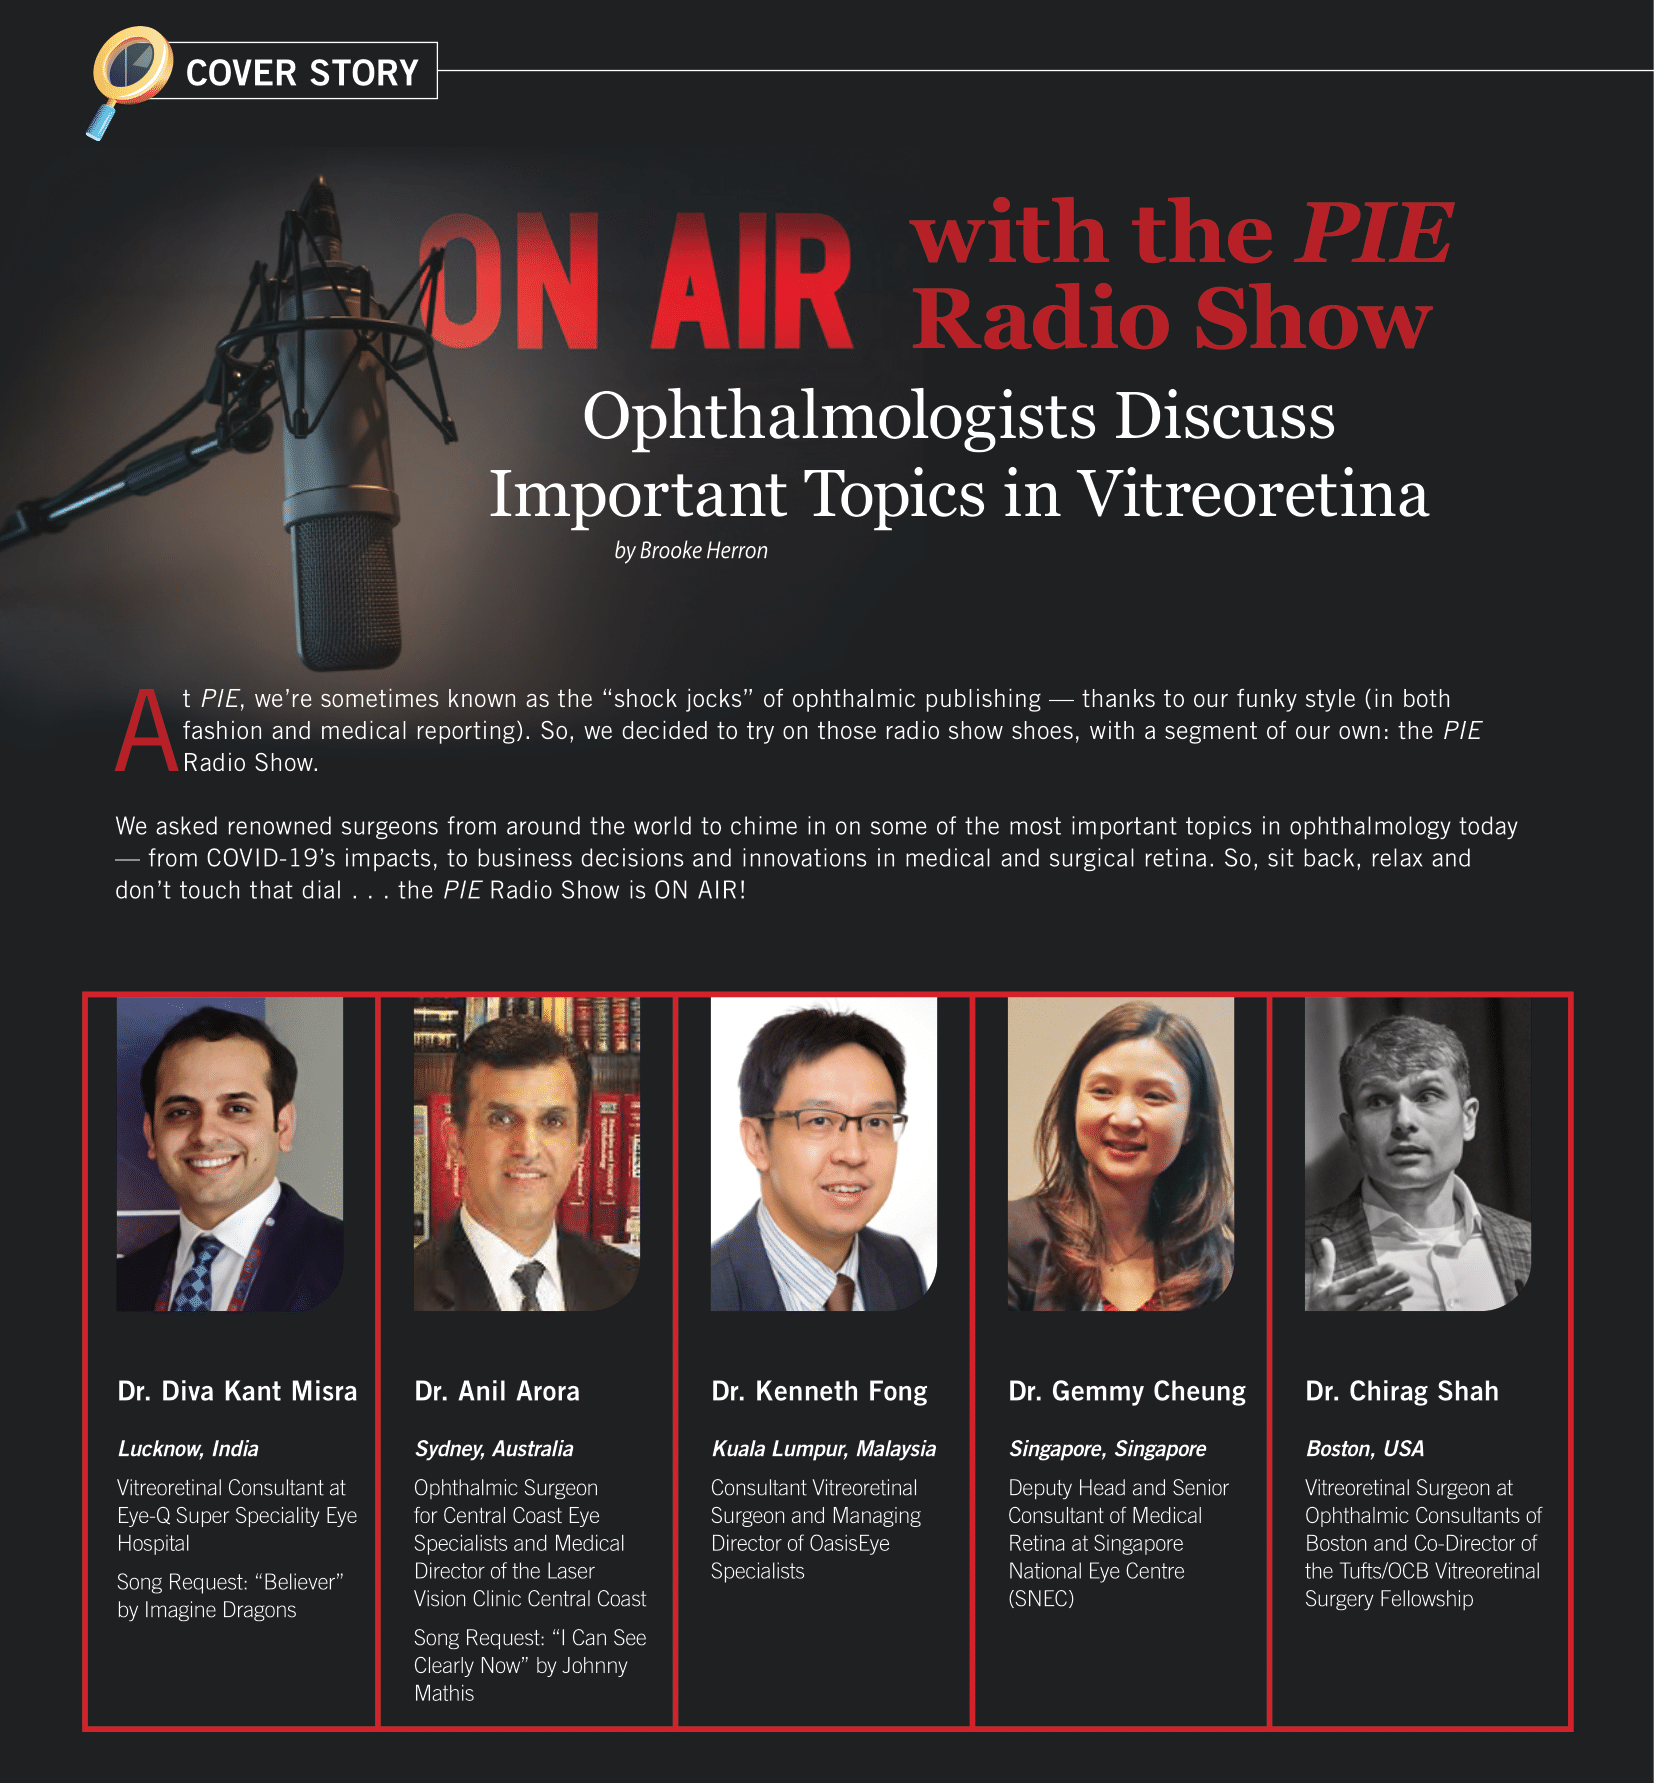 Ophthalmologists Discuss Important Topics in Vitreoretina